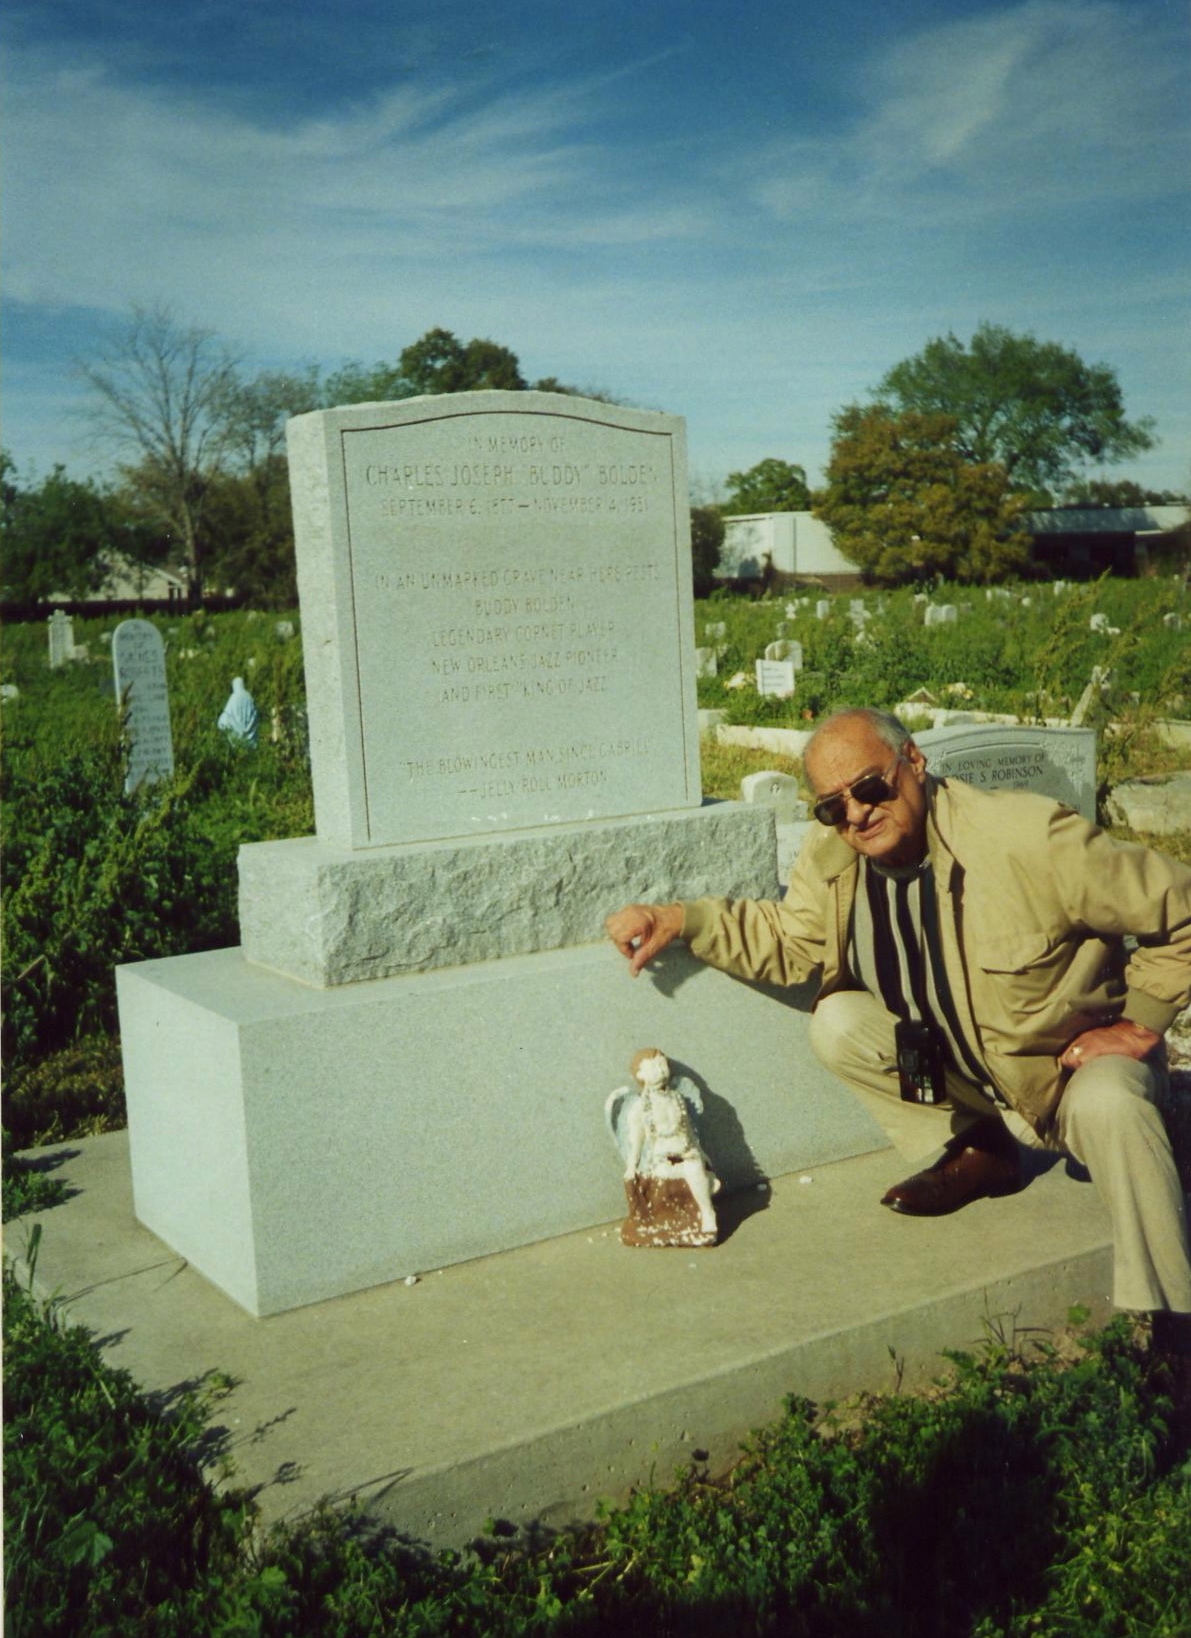 Bolden biographer Don Marquis, next to Buddy Bolden's marker in Holt Cemetery, 1996 (Photo via Infrogmation on Flickr)